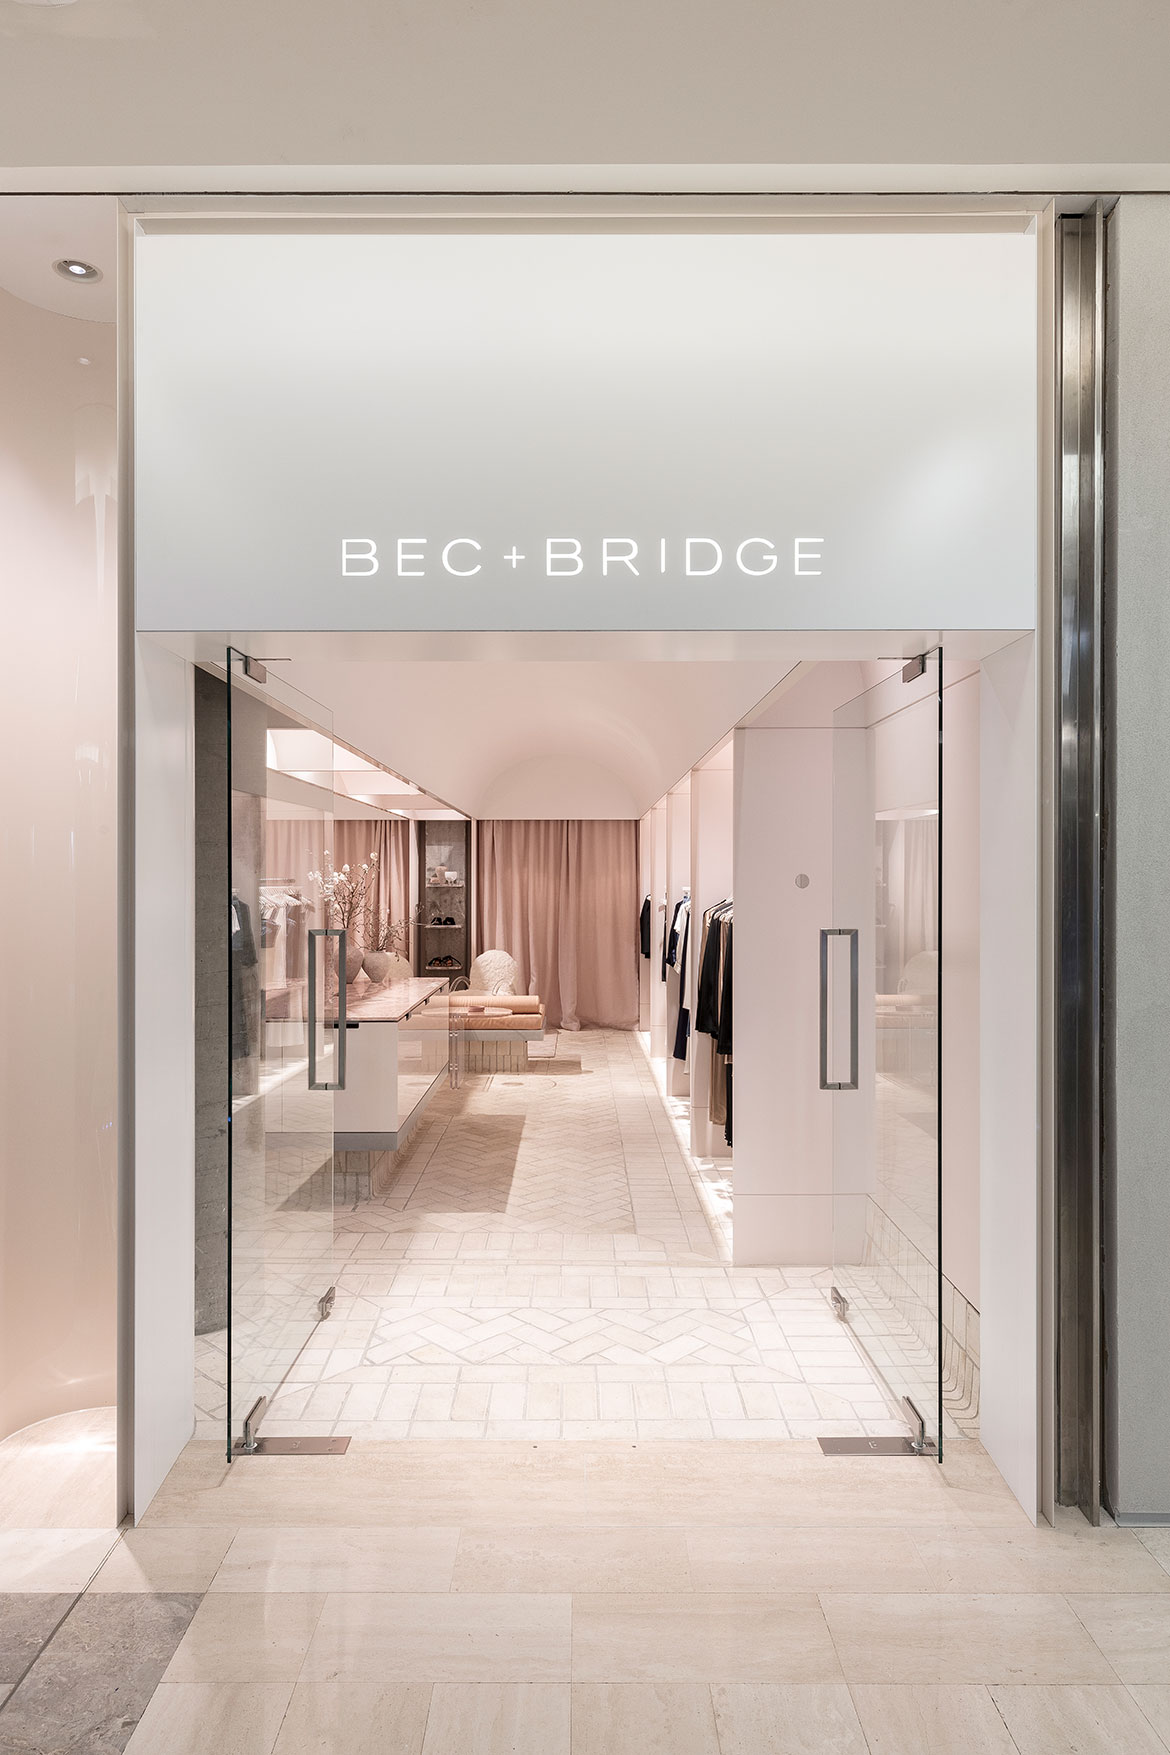 Bec+Bridge Bondi Junction George Livissianis door